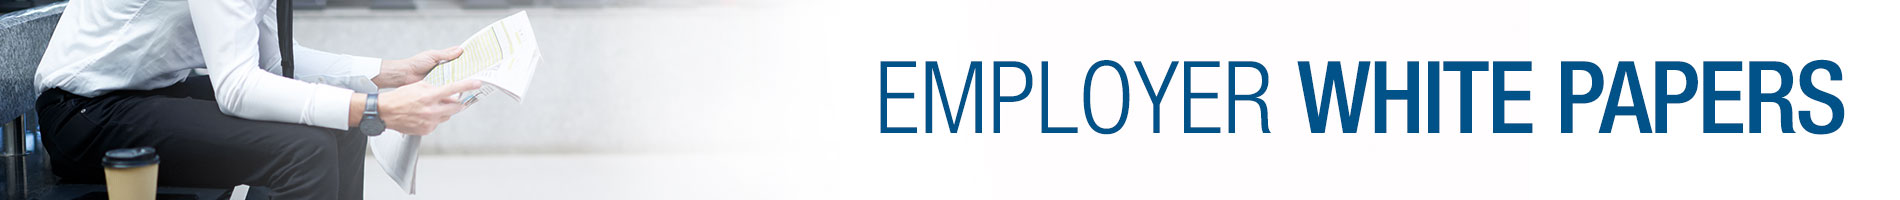 Employer Whitepapers - Hospital Staffing Agencies in Eugene, OR